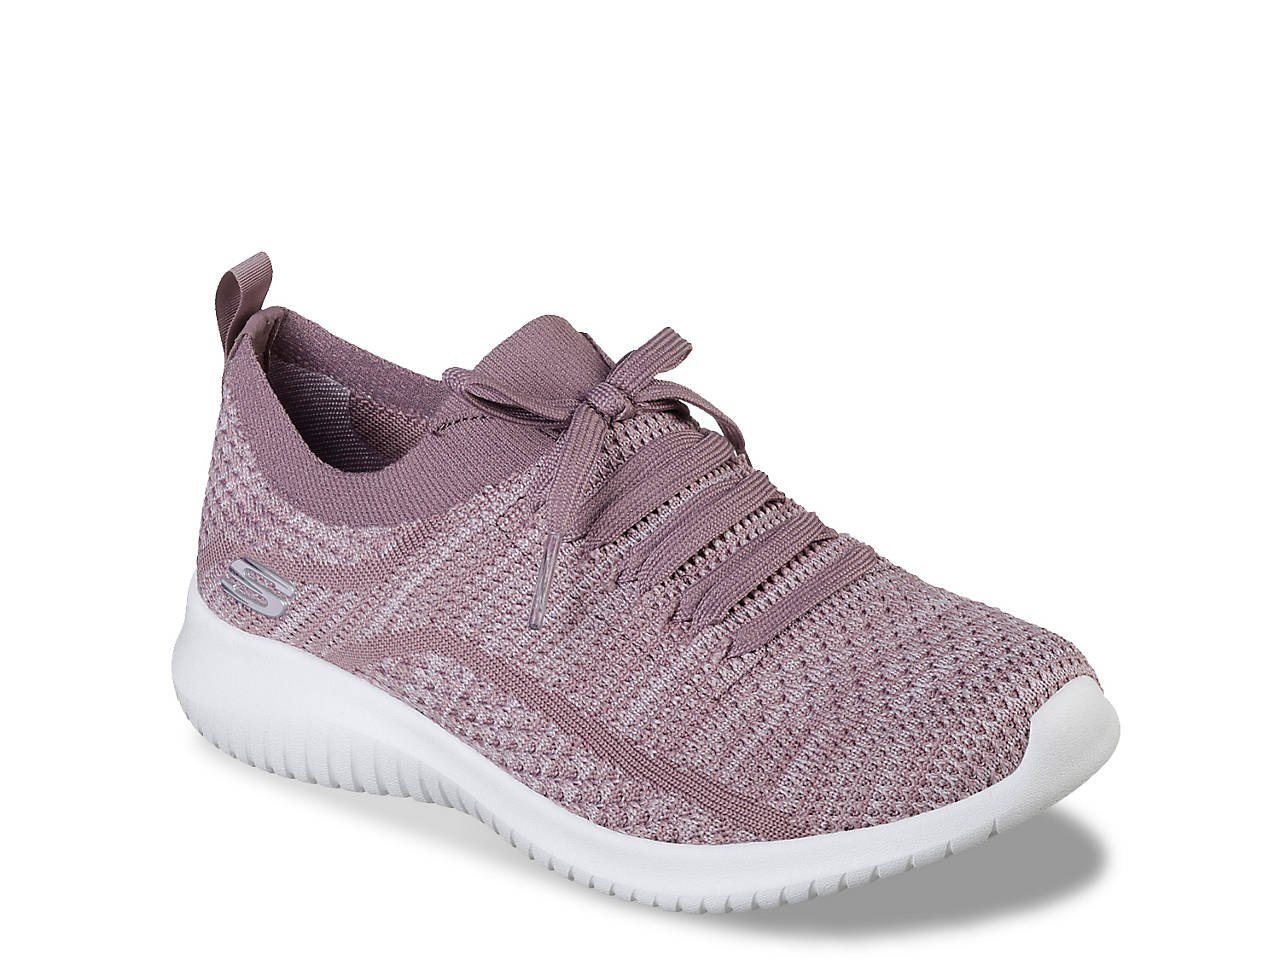 16fde0126702 Skechers Ultra Flex Statements Sneaker - Women s Women s Shoes